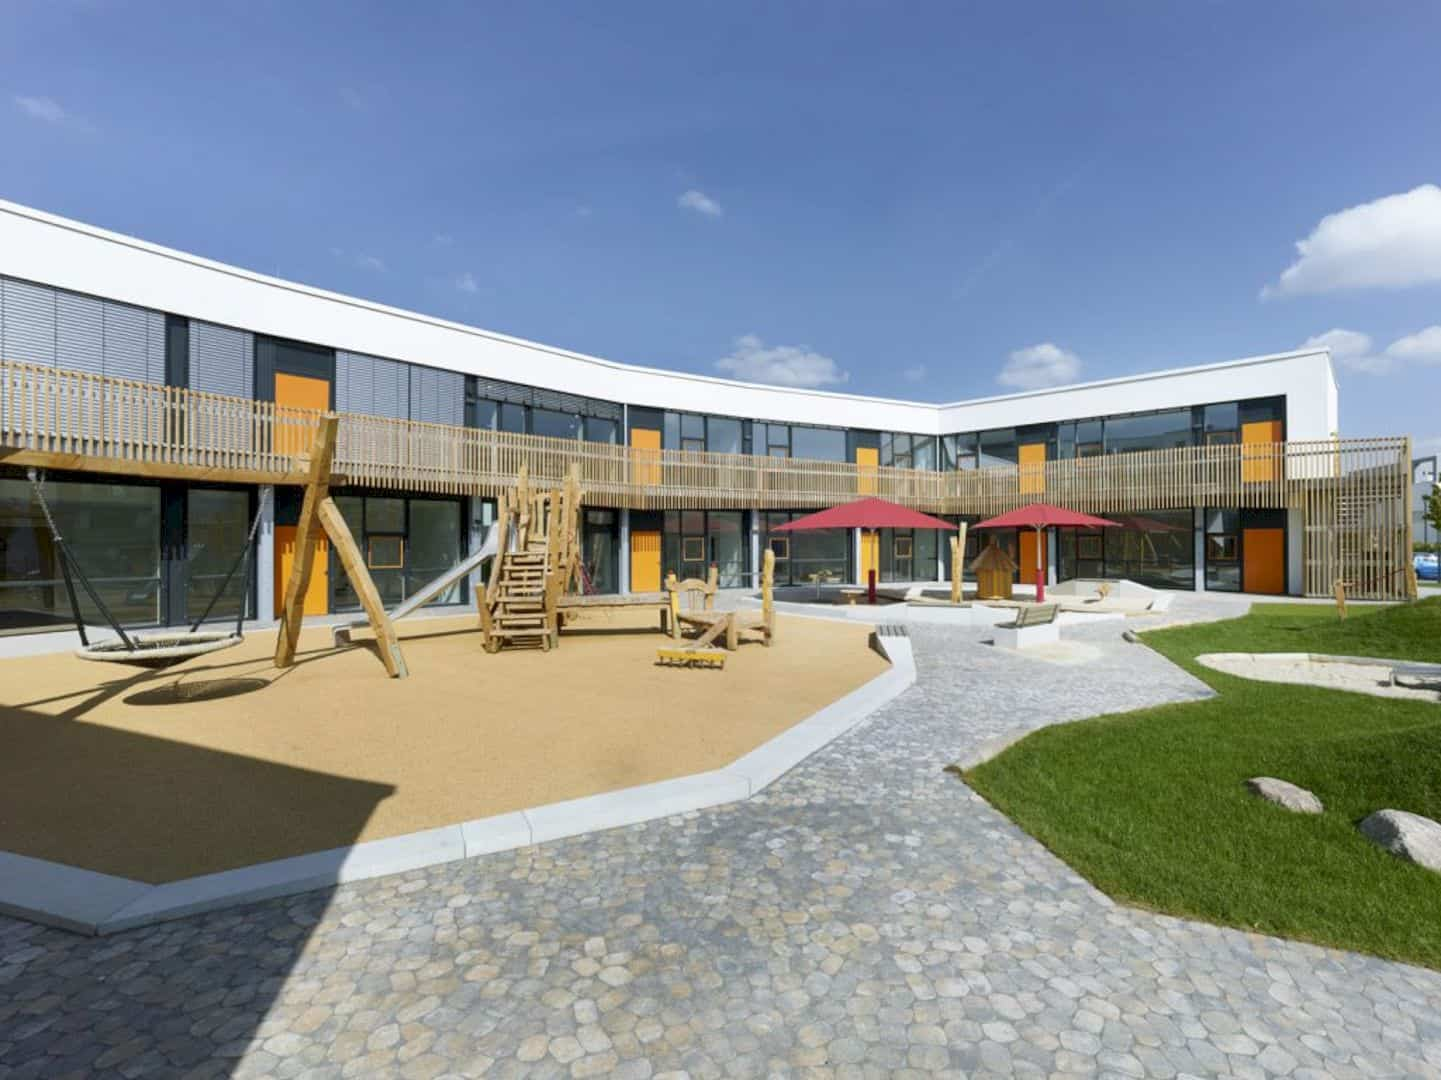 Koenigsblick Kindergarten A Childcare Center Incorporating Park Concept 3